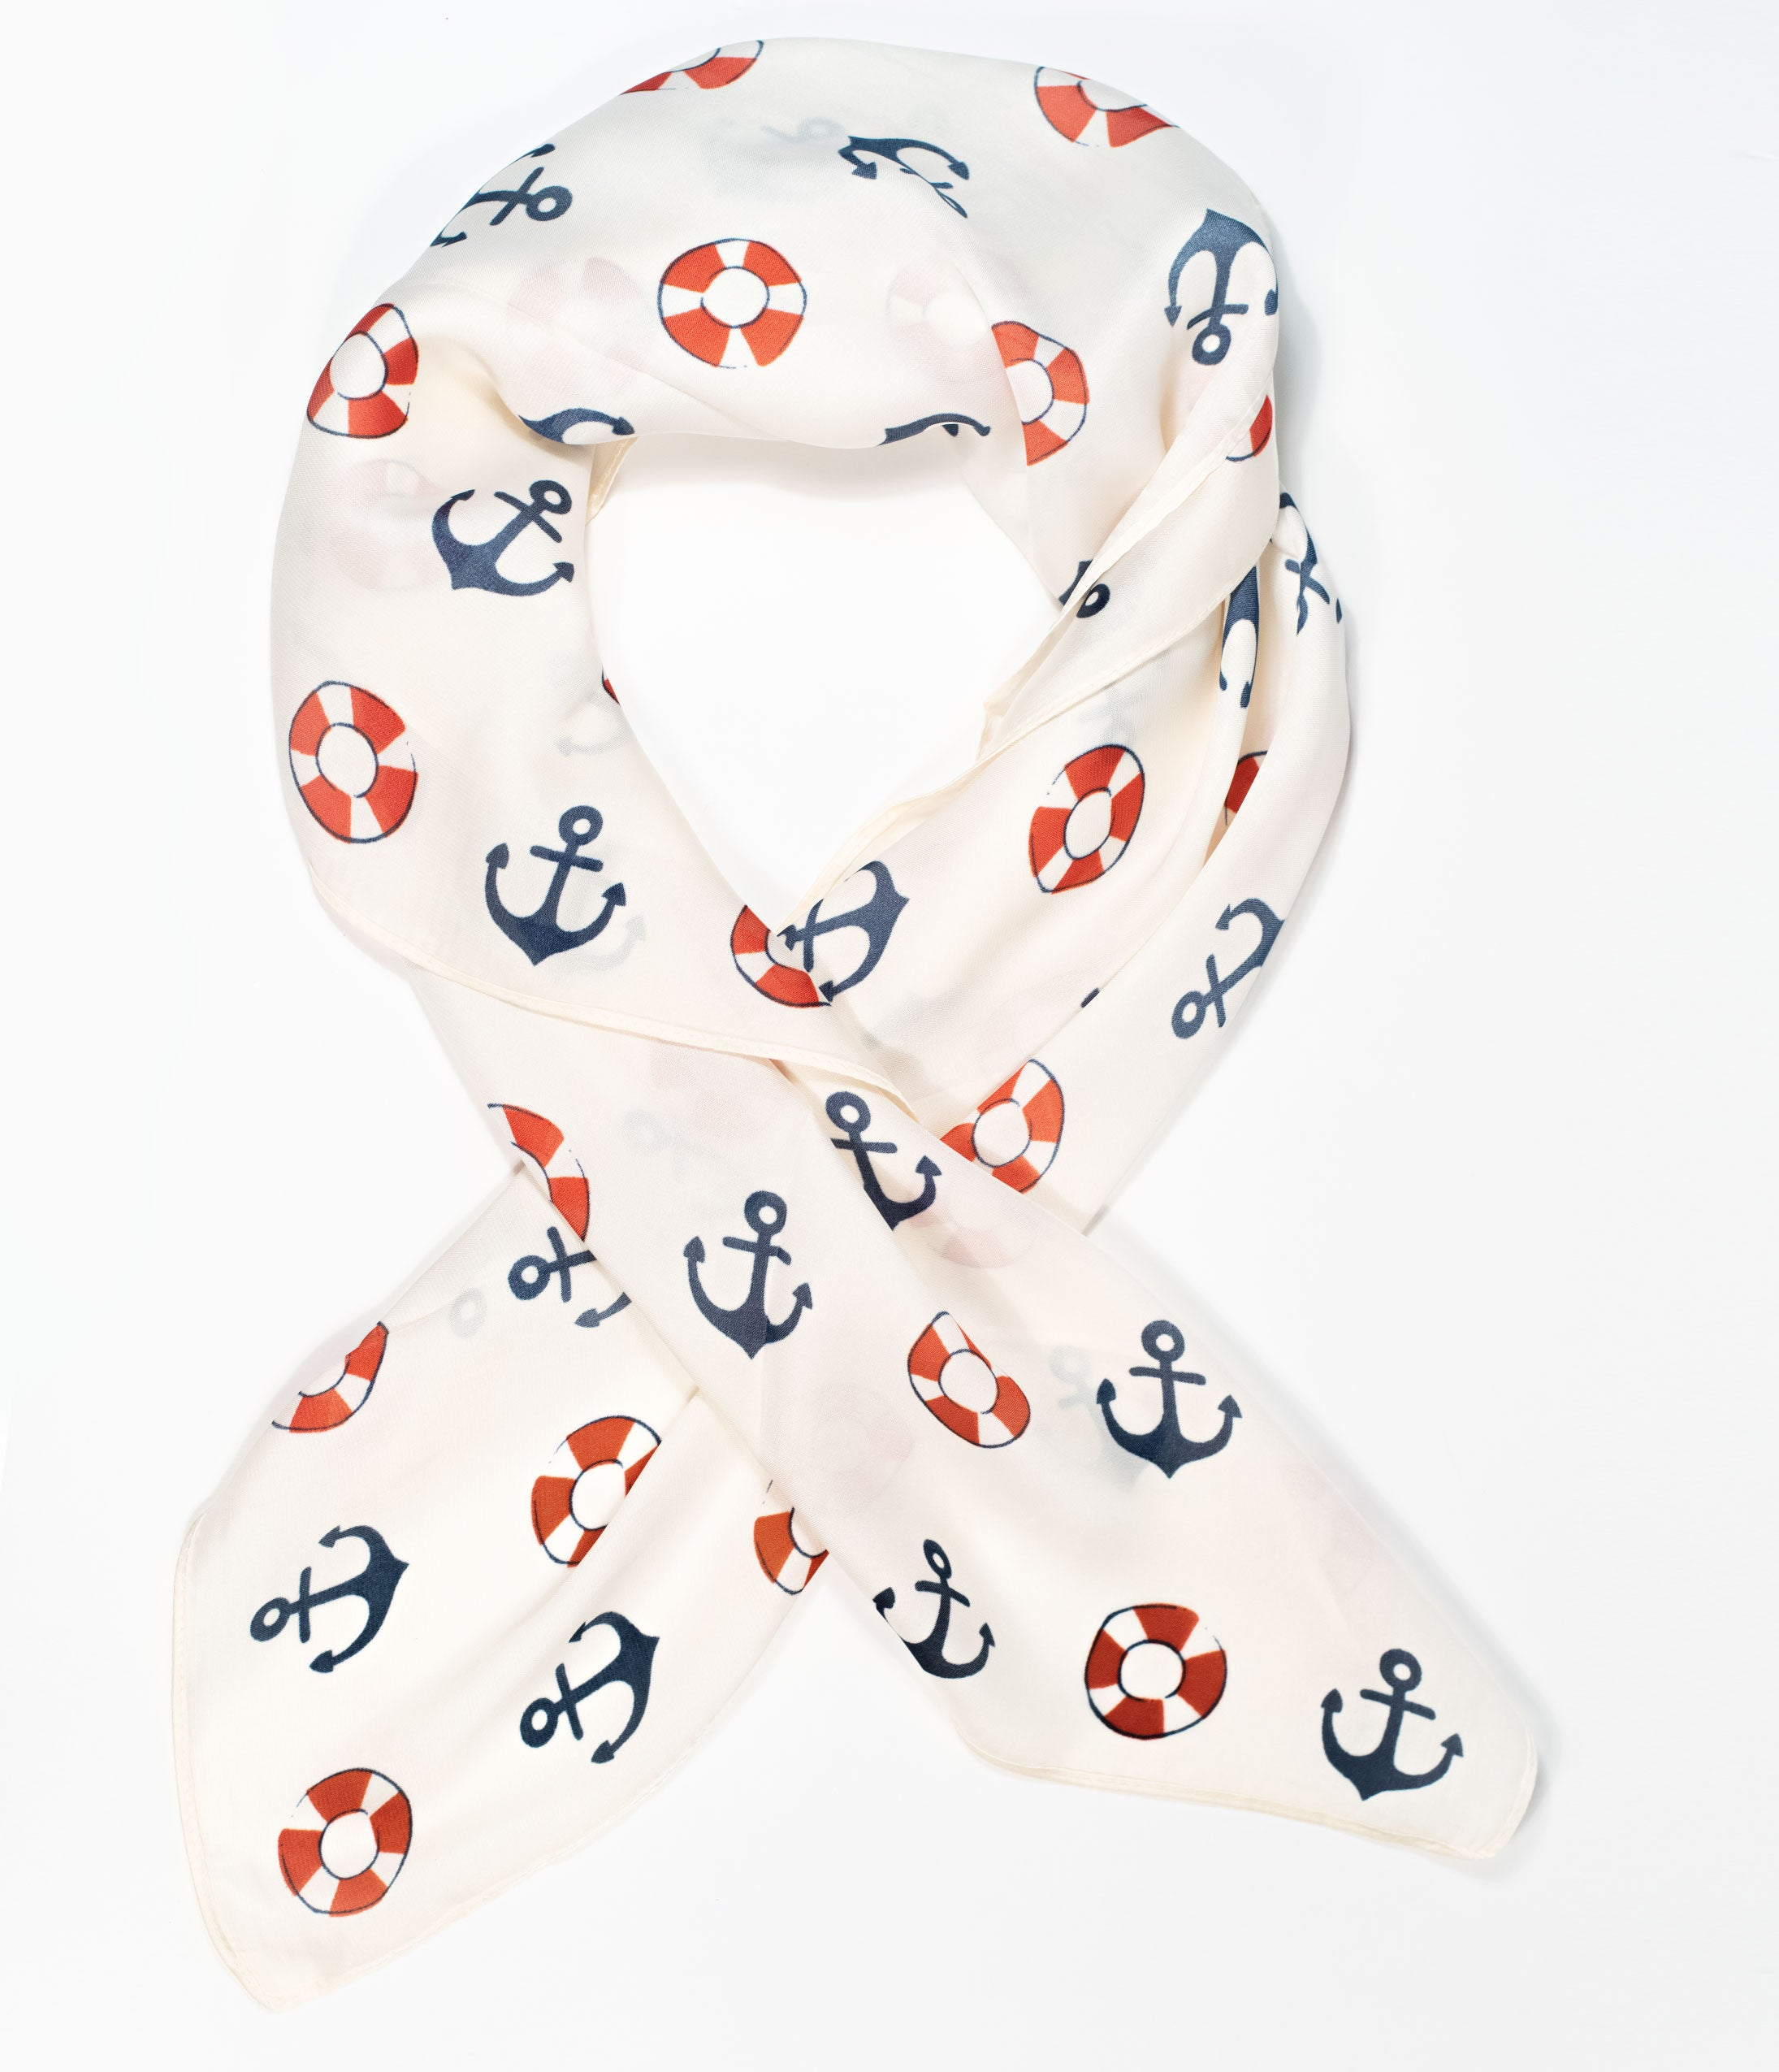 Vintage Scarves- New 1920s to 1970s Styles Unique Vintage Nautical Print Hair Scarf $16.00 AT vintagedancer.com